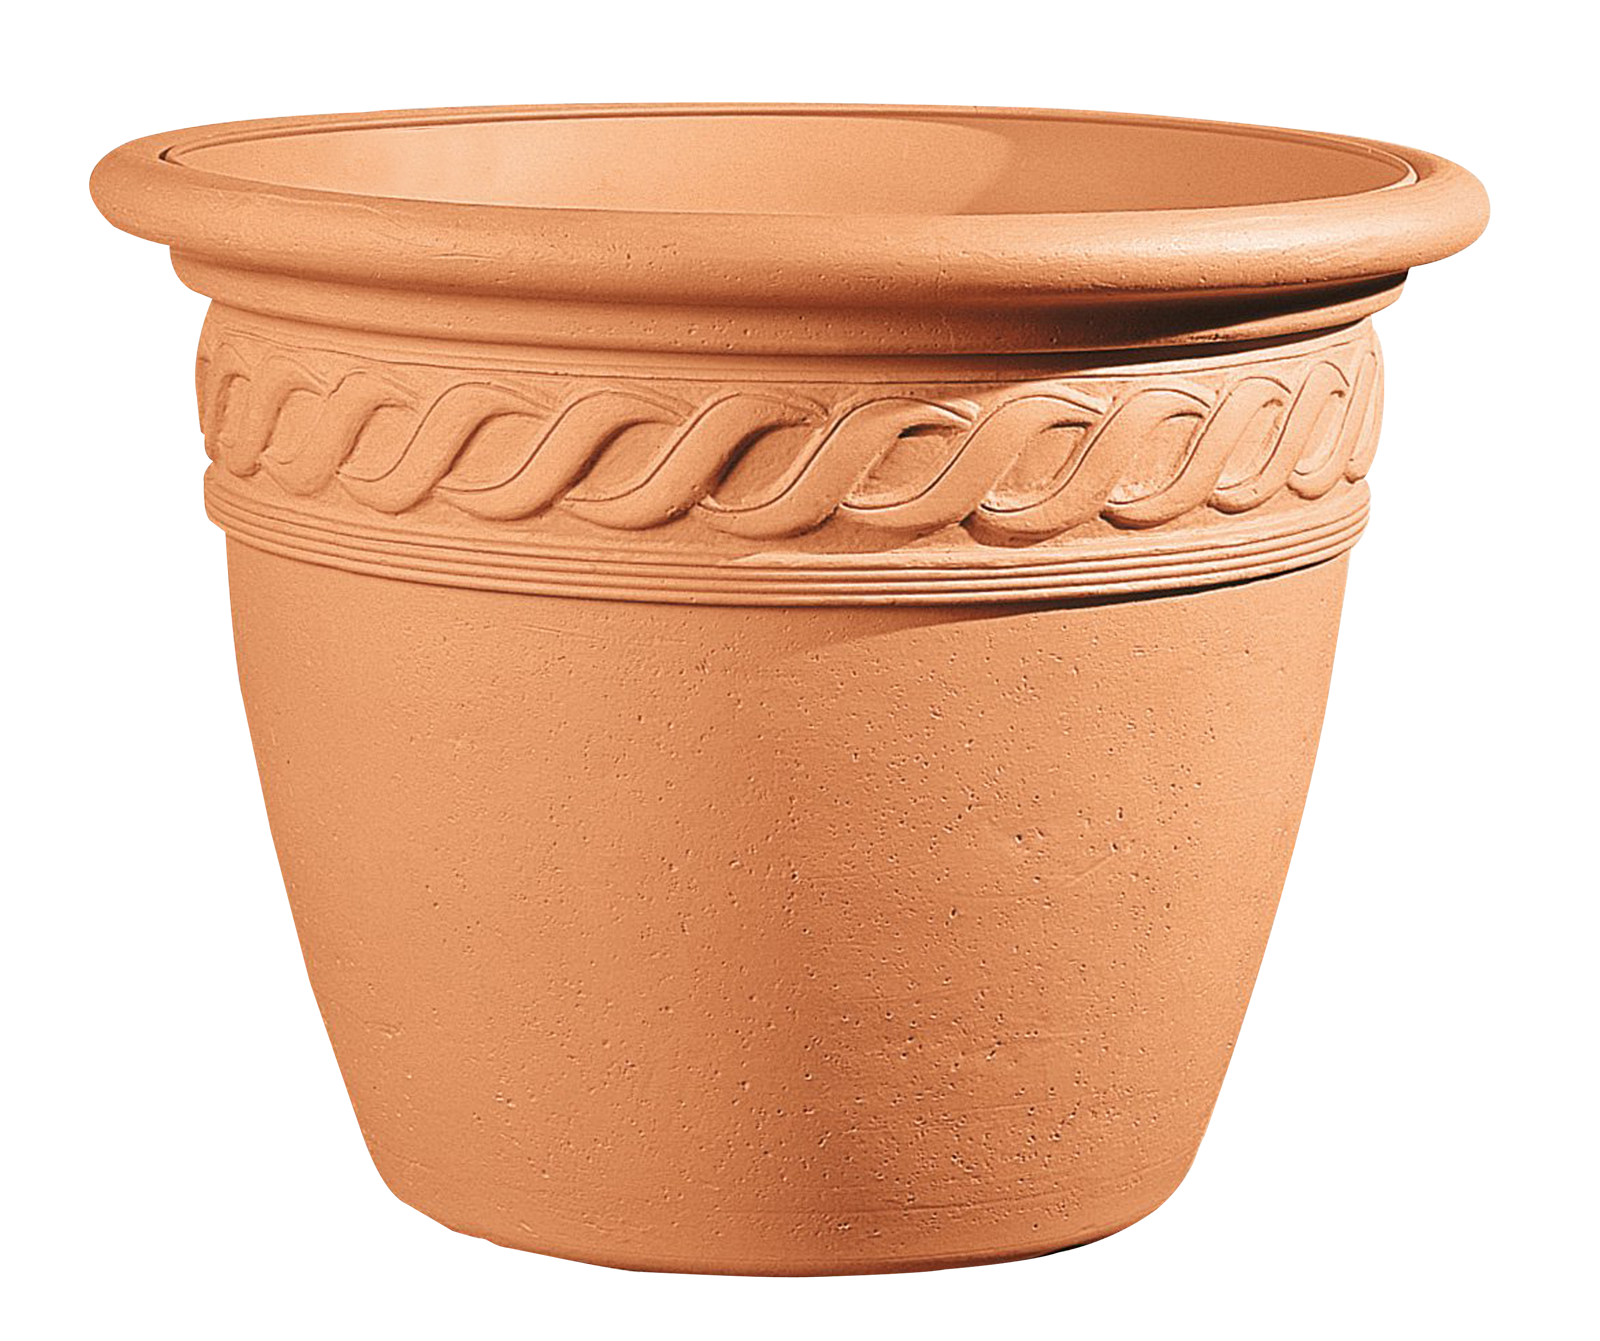 Flower Pot PNG Transparent Image.